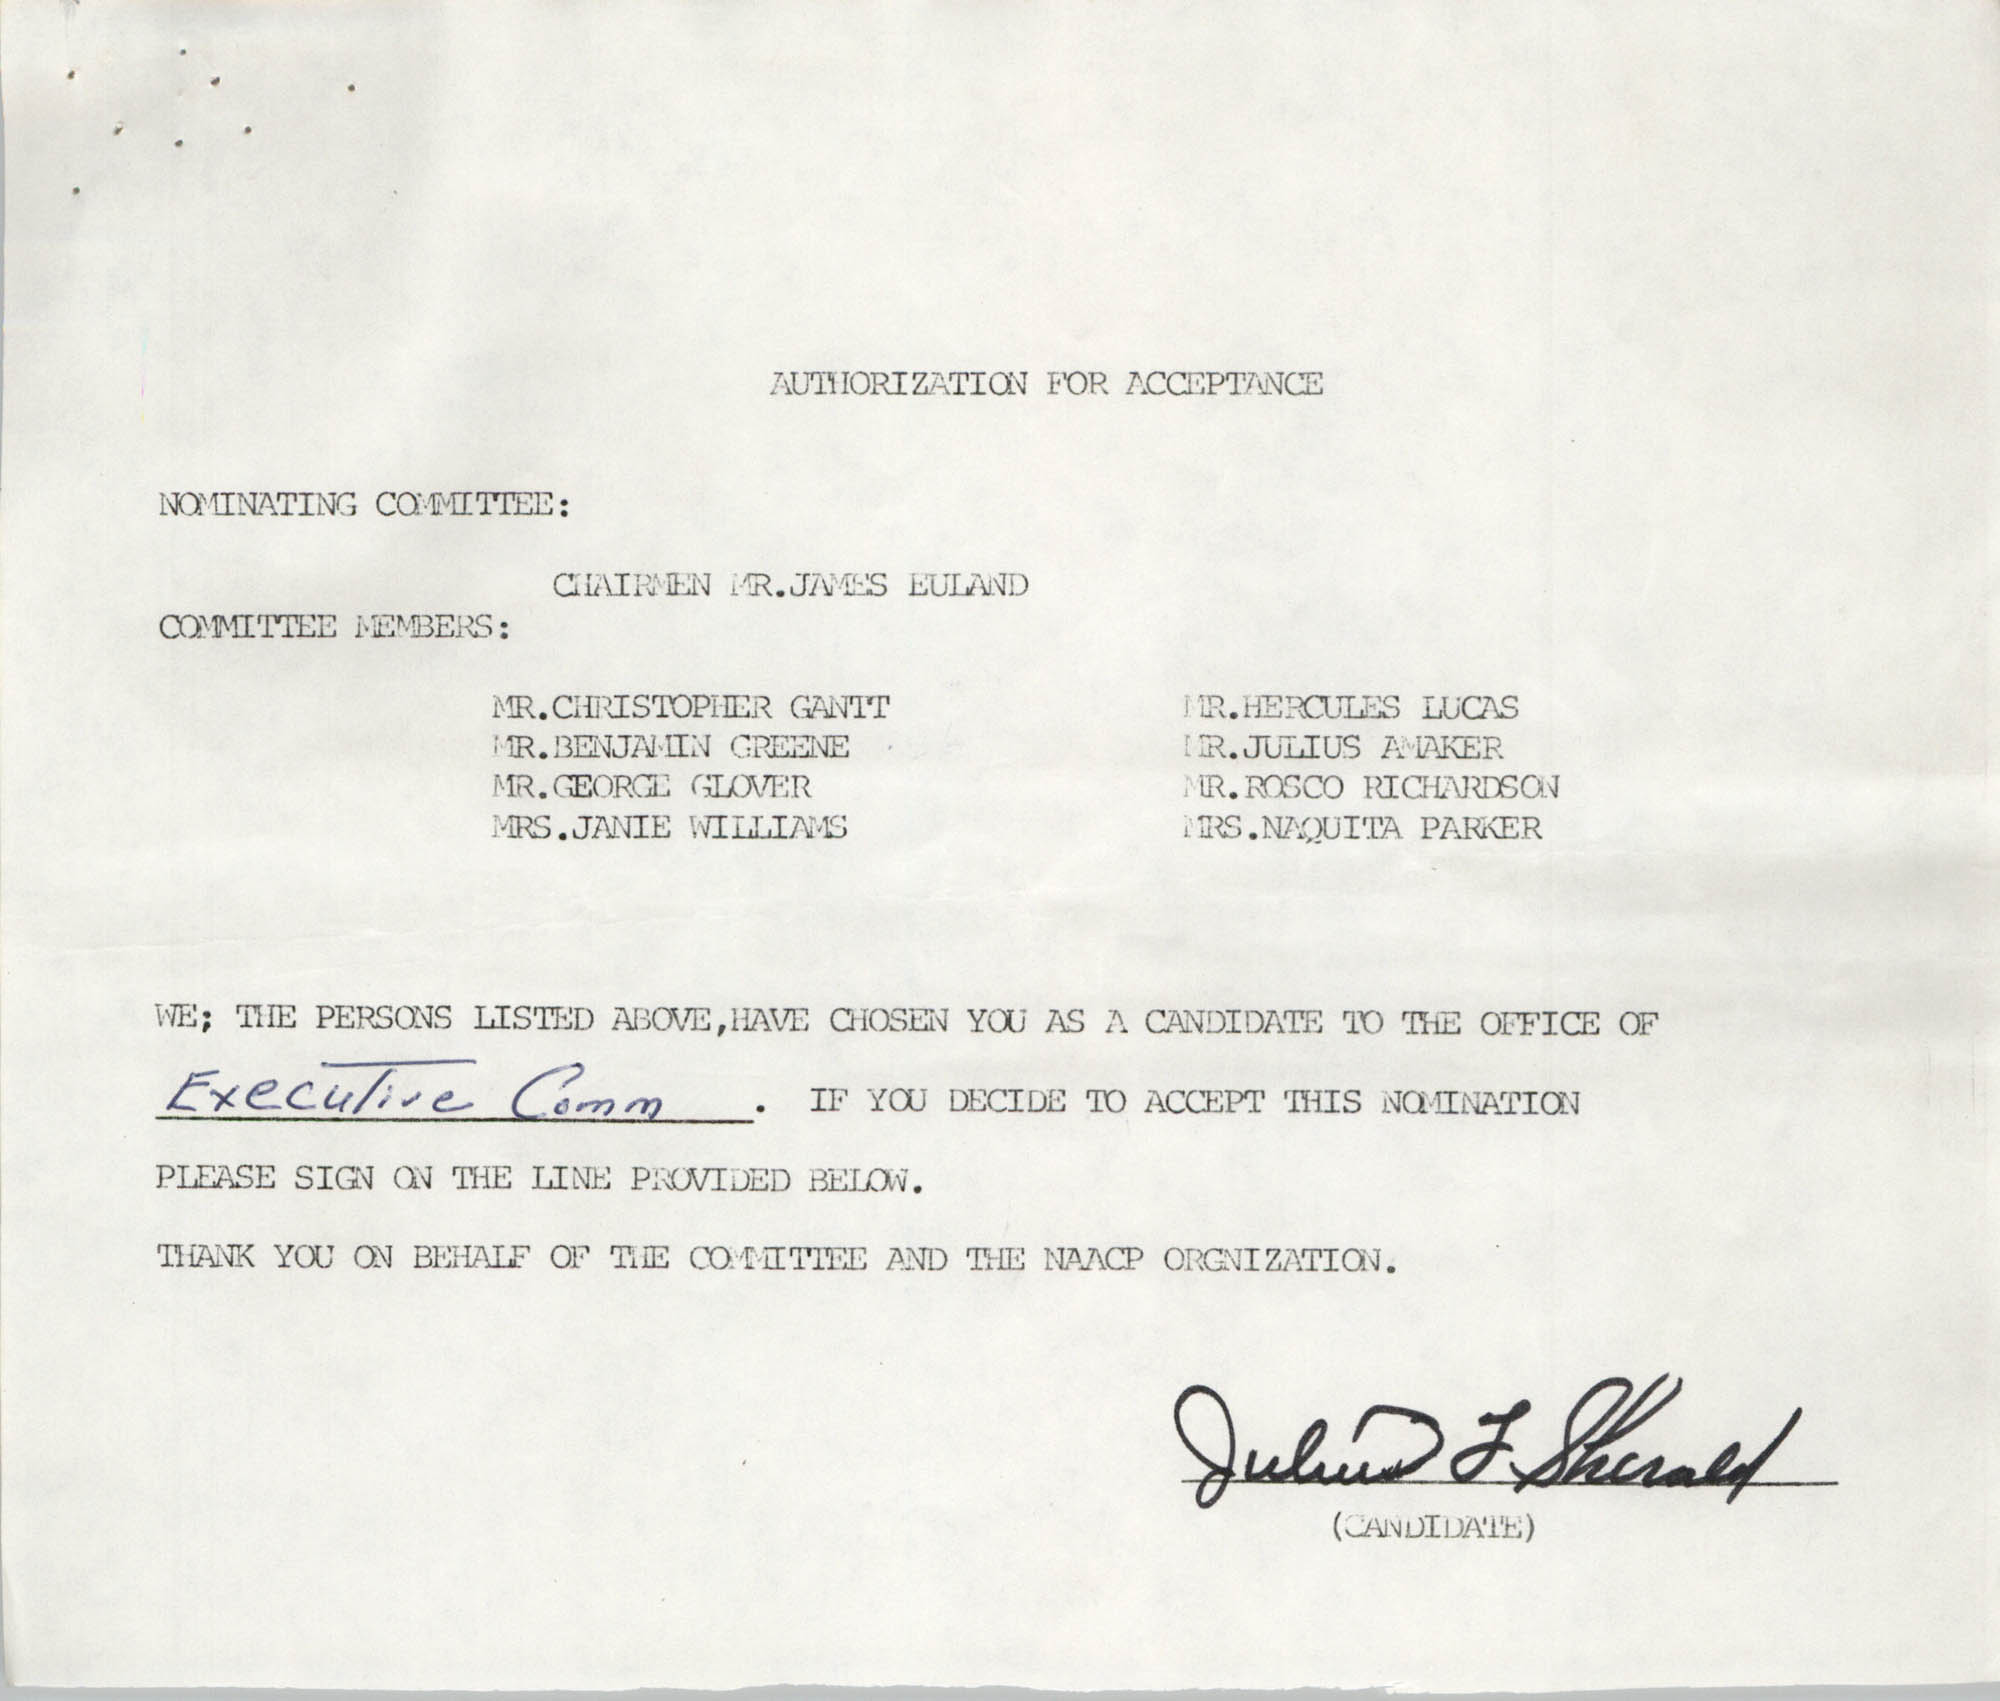 Charleston Branch of the NAACP Election Materials, Authorization for Acceptance